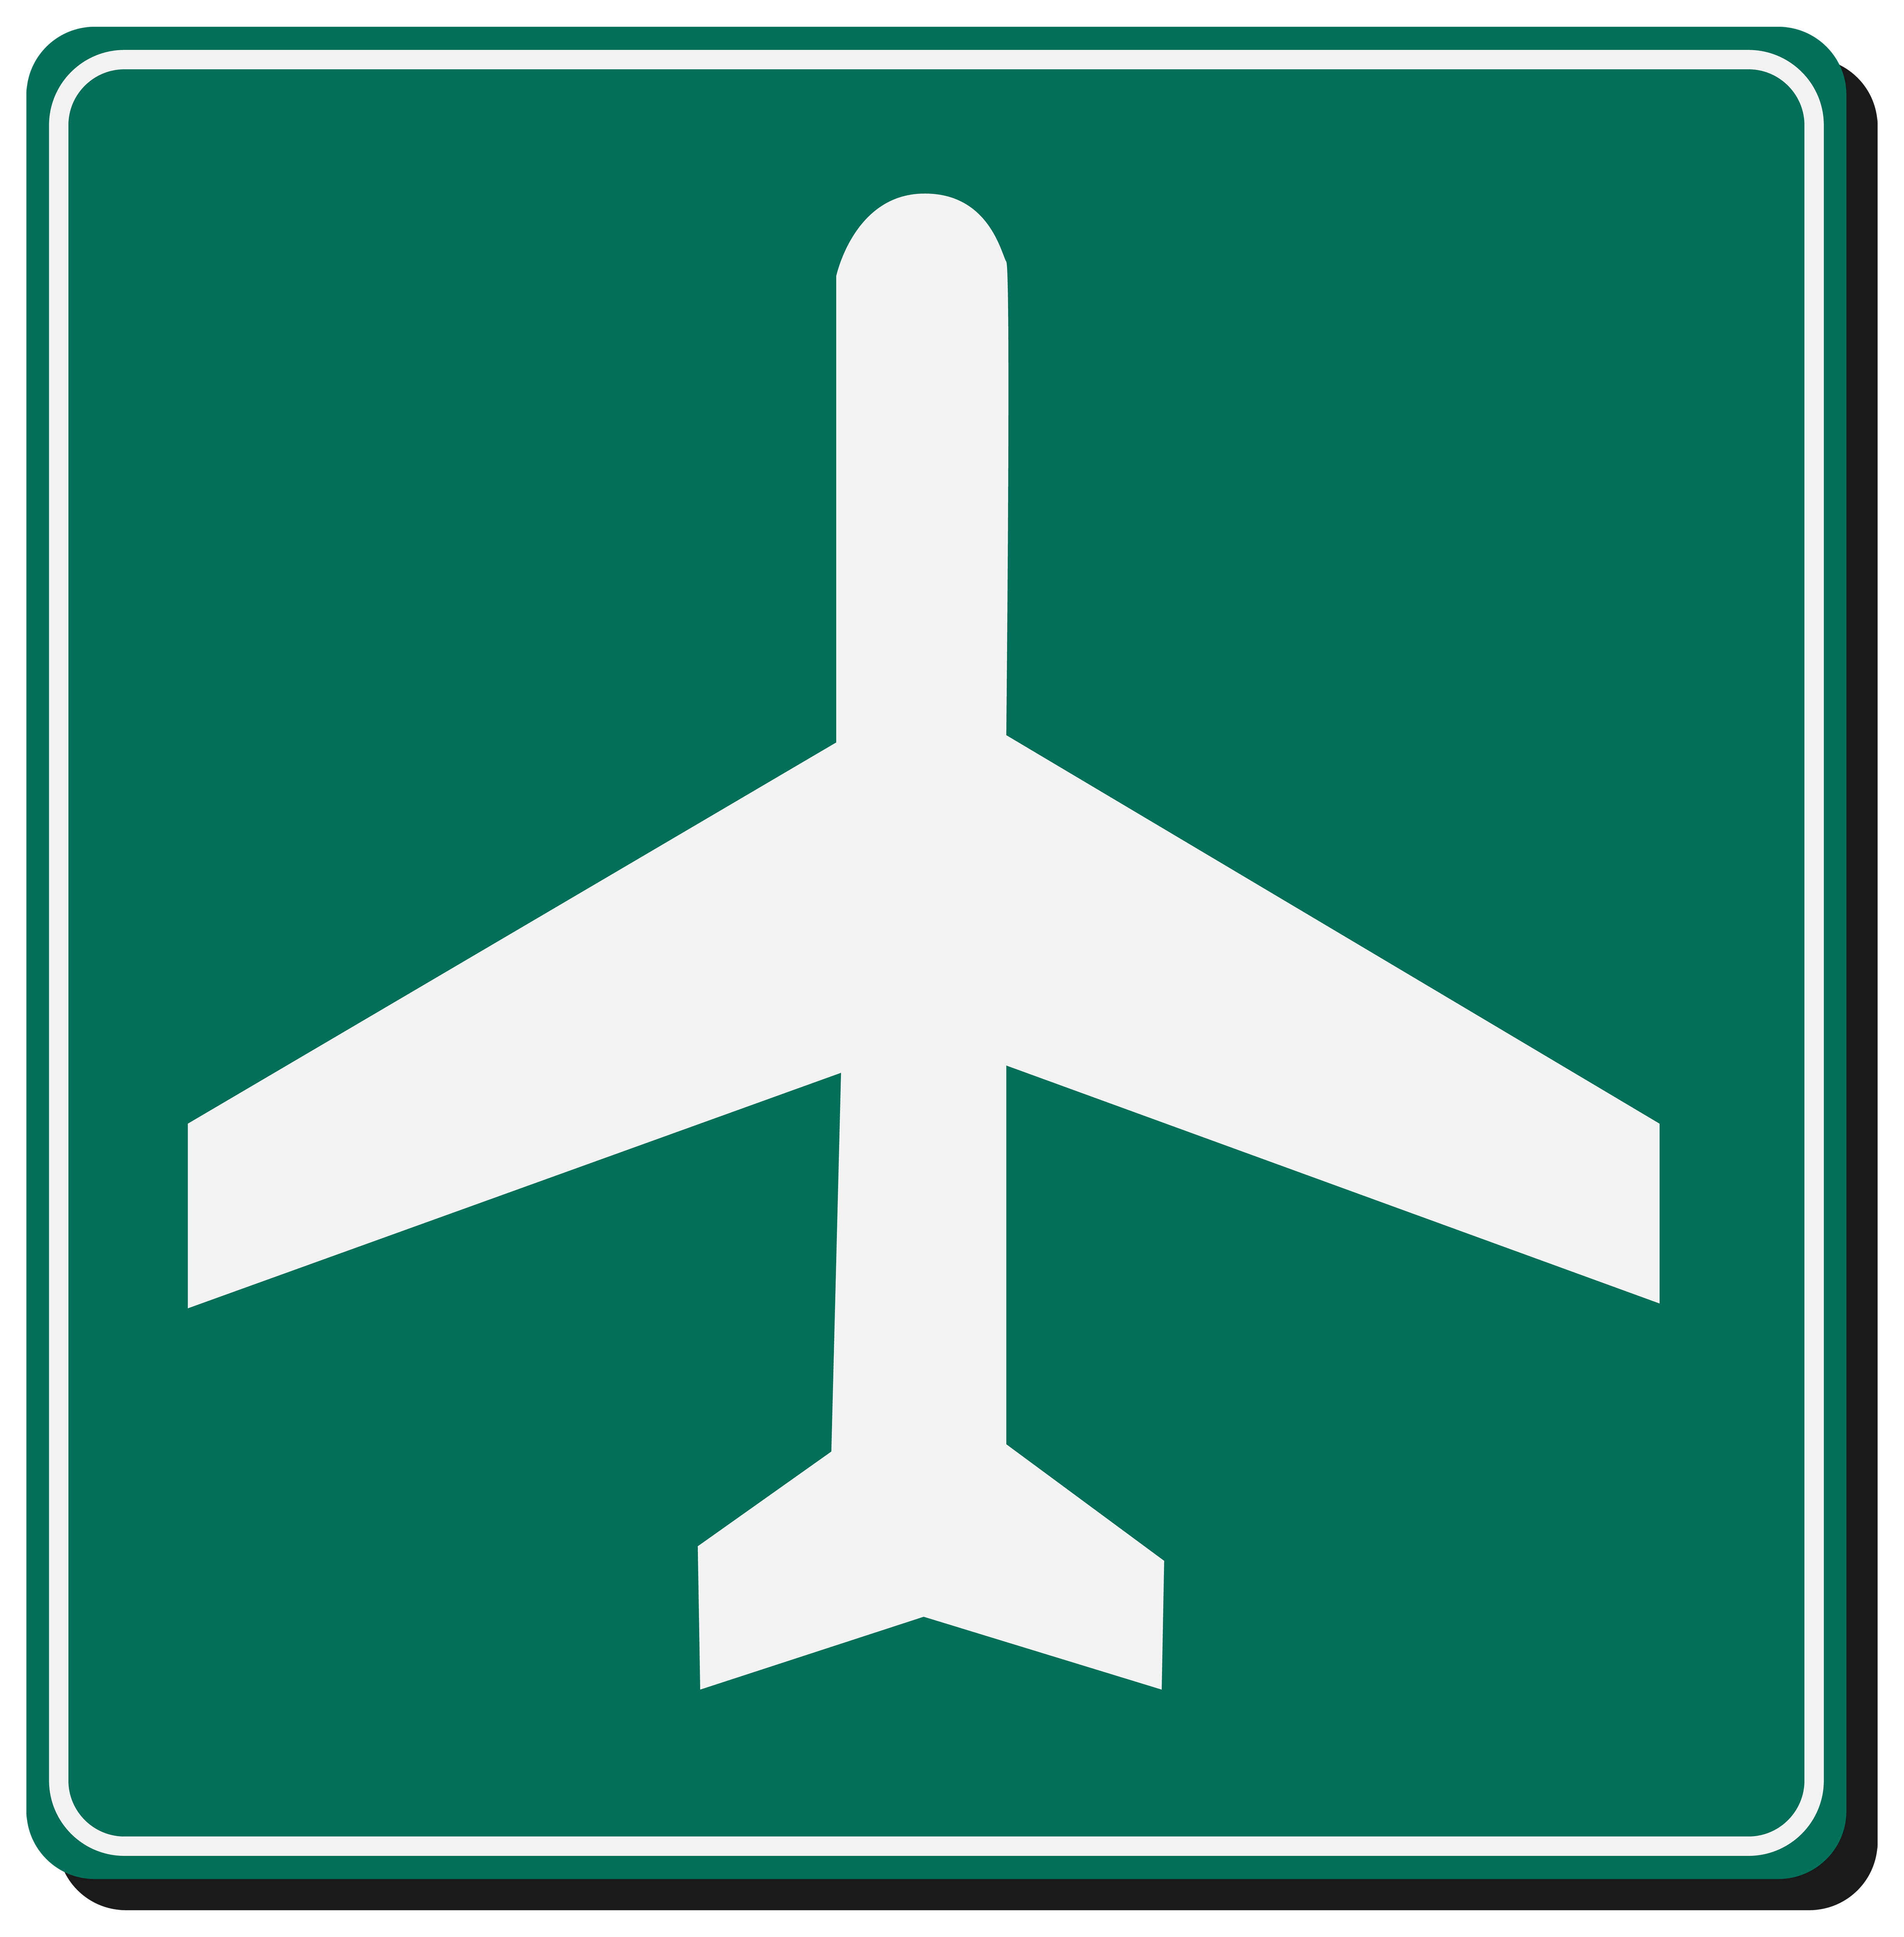 Airport Sign PNG Clipart.